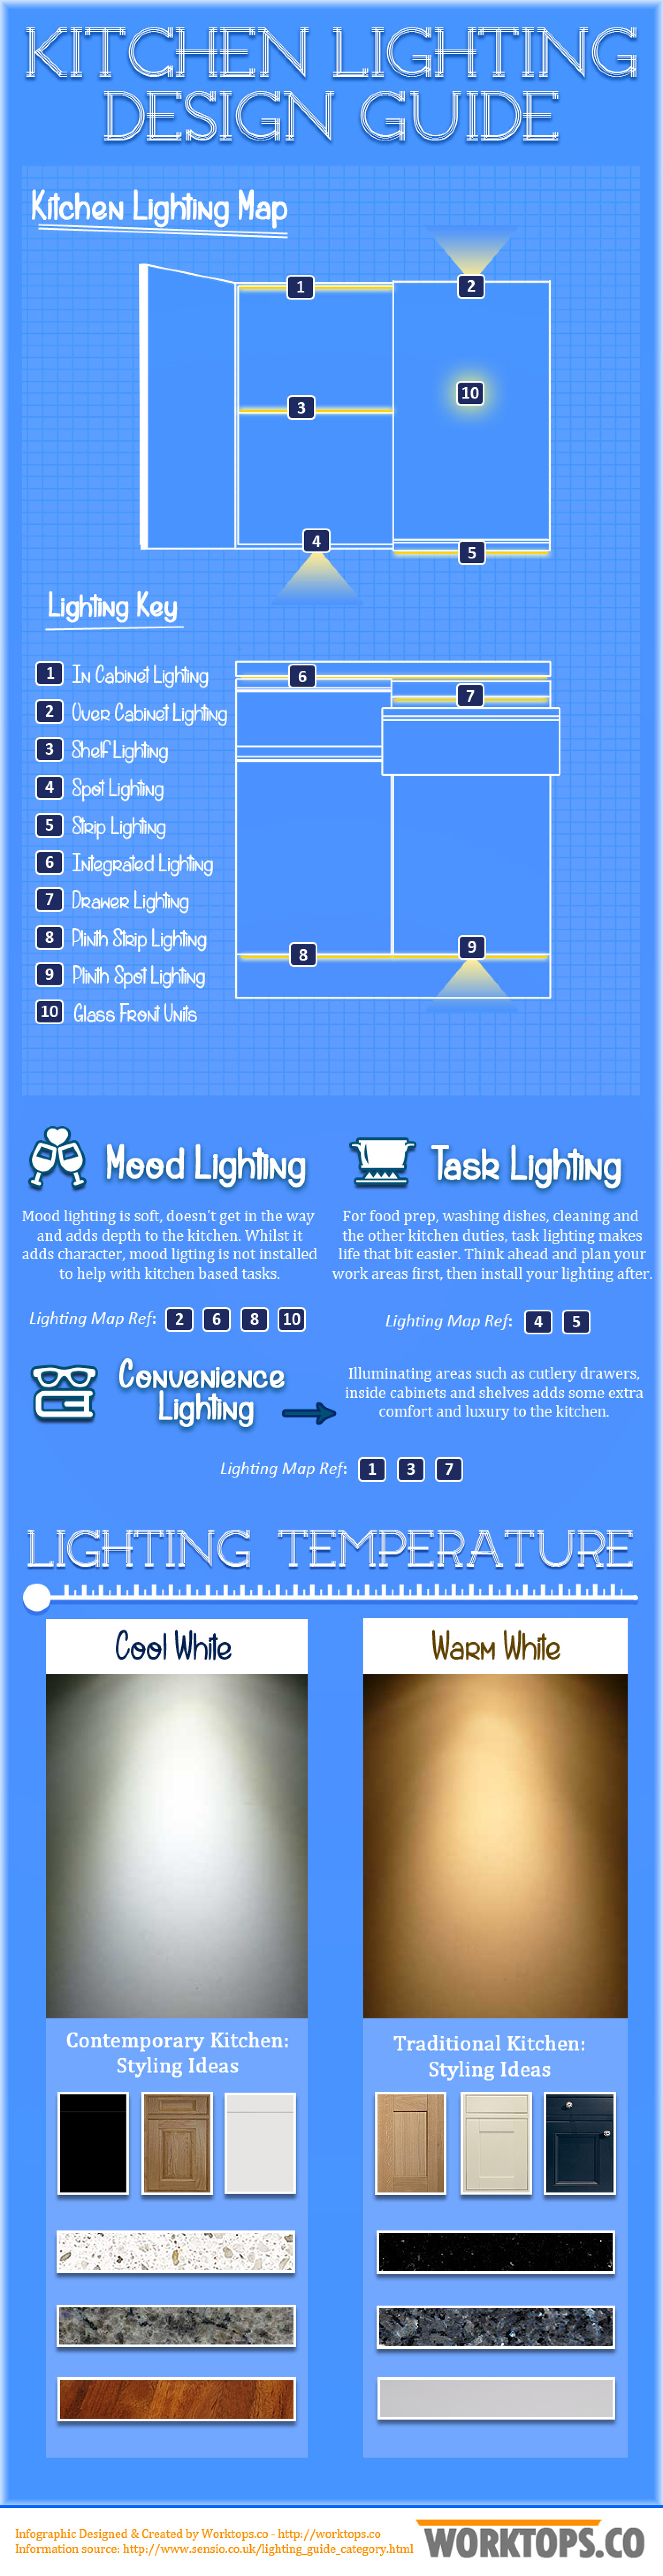 A Simple Design Guide For Kitchen Lighting